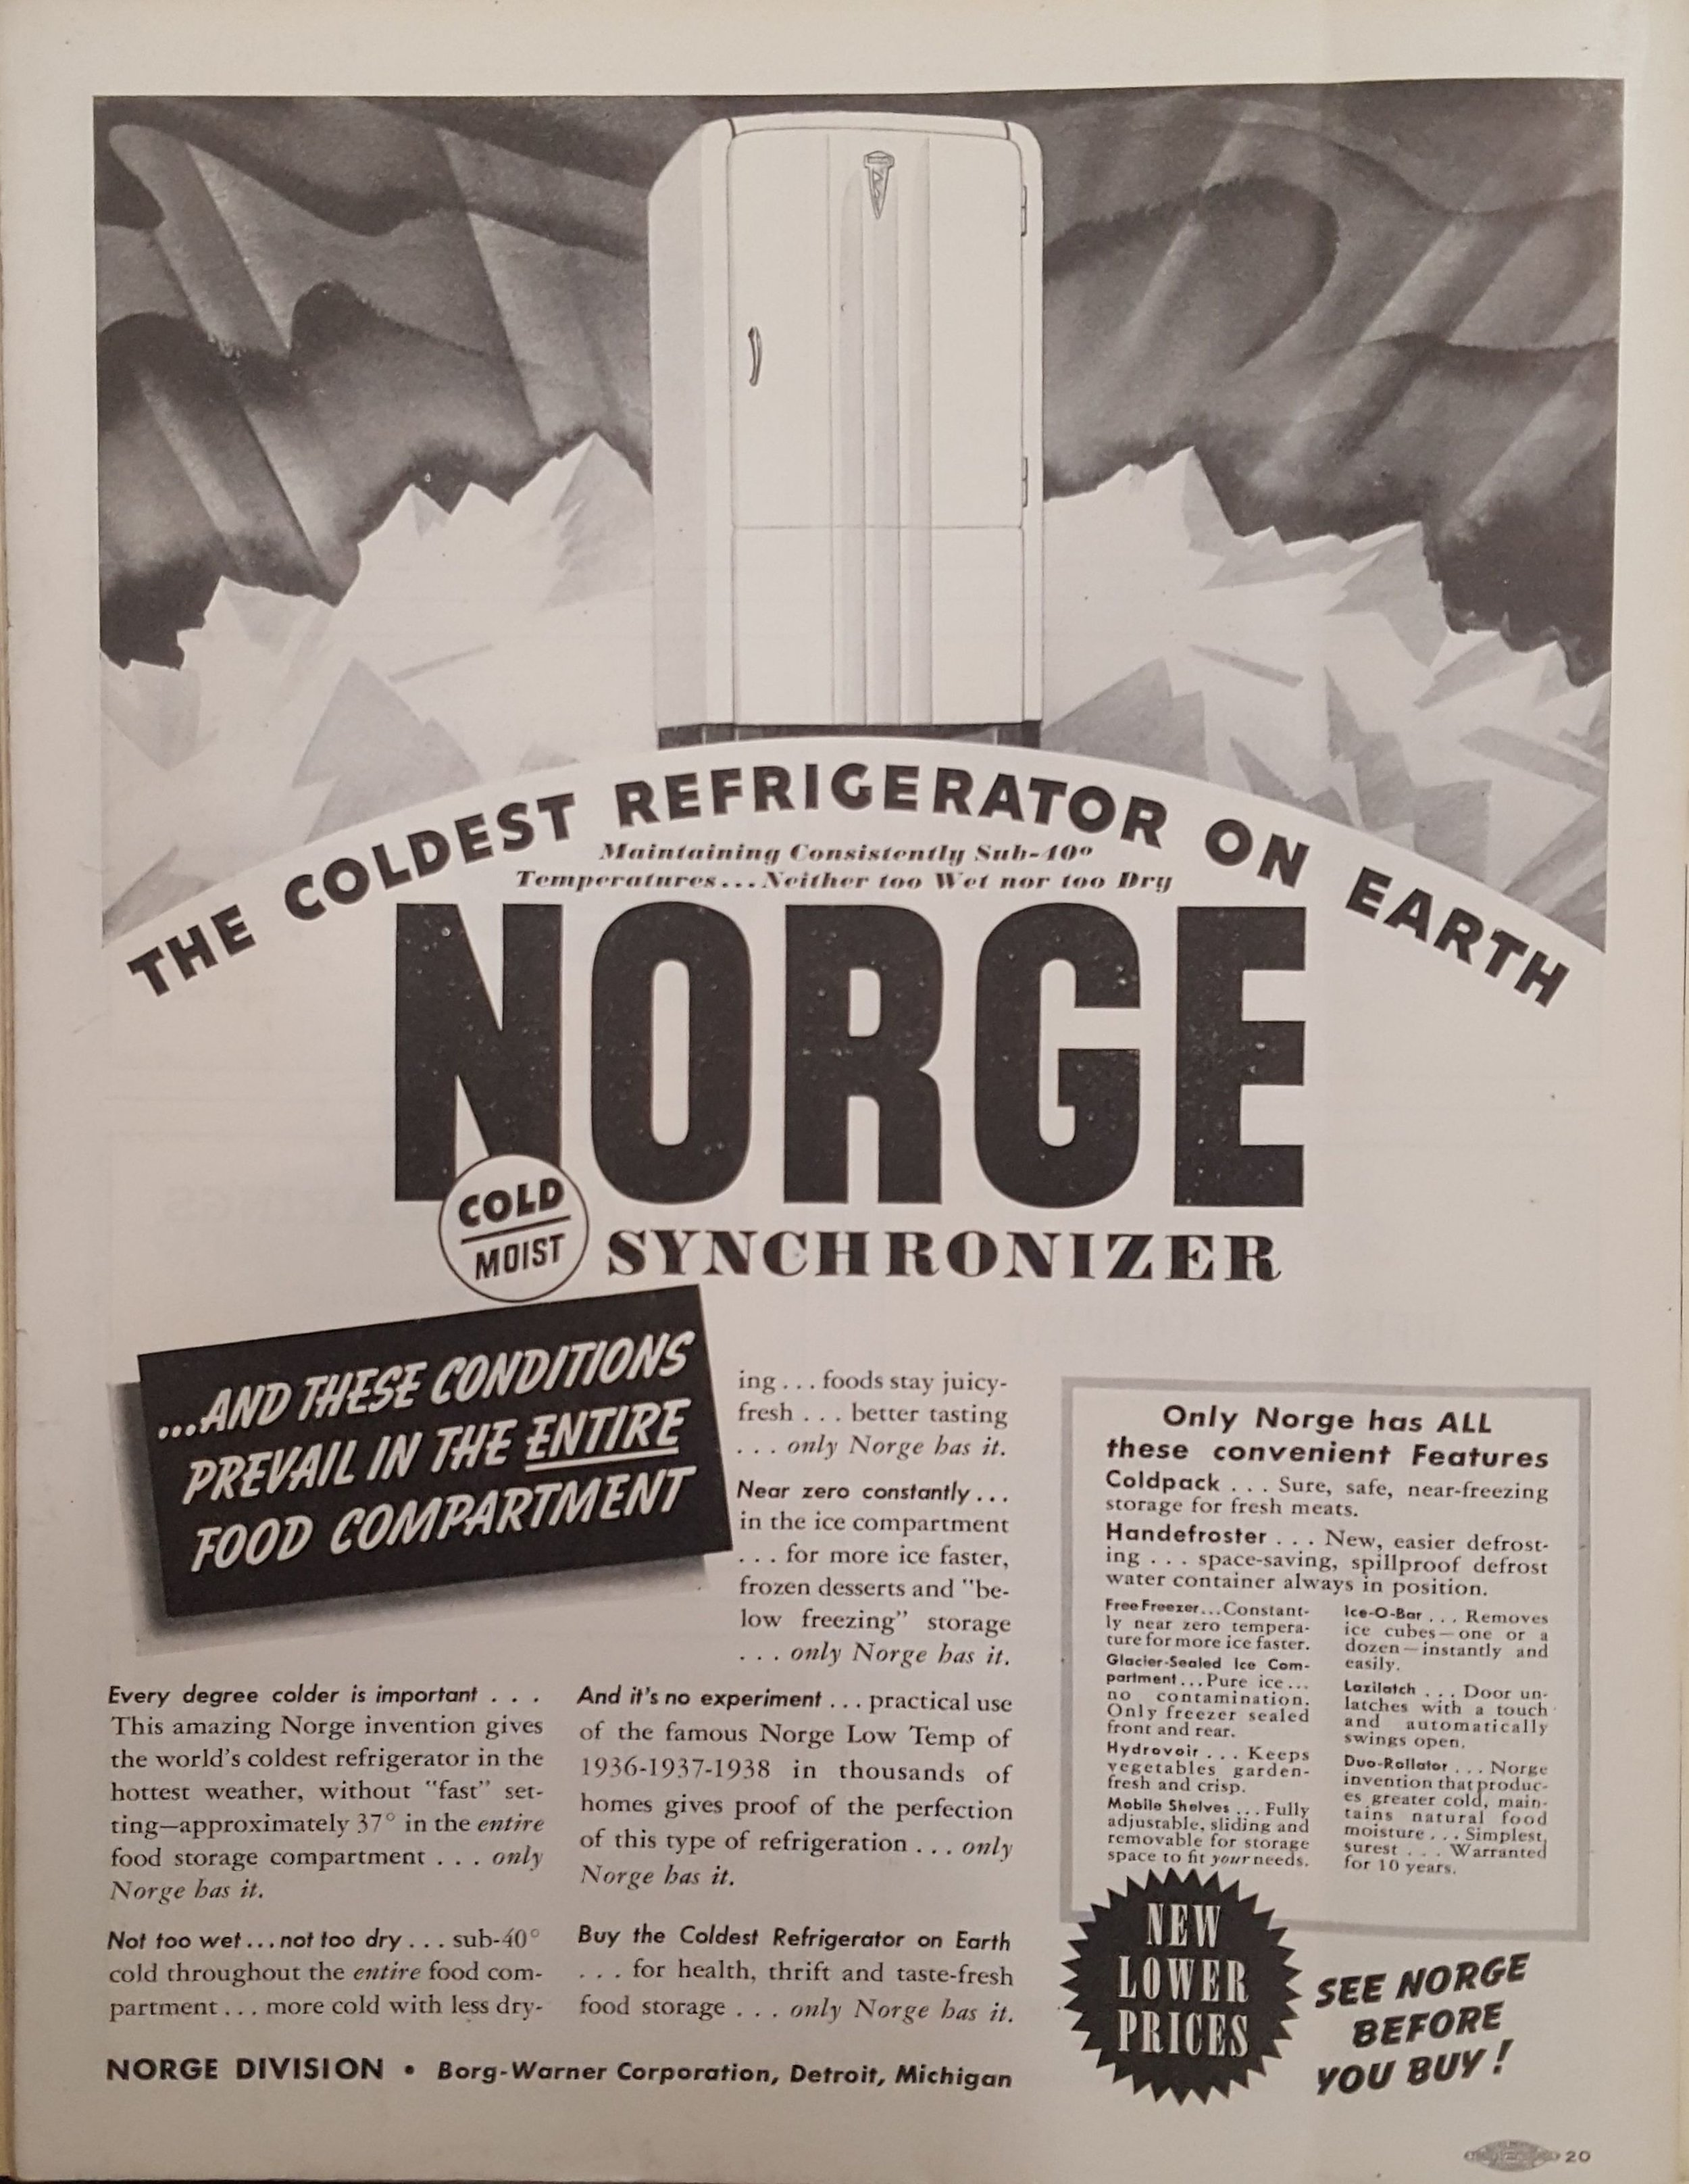 With its rounded corners, the Norge refrigerator model of 1934 reflects the look of the decade.